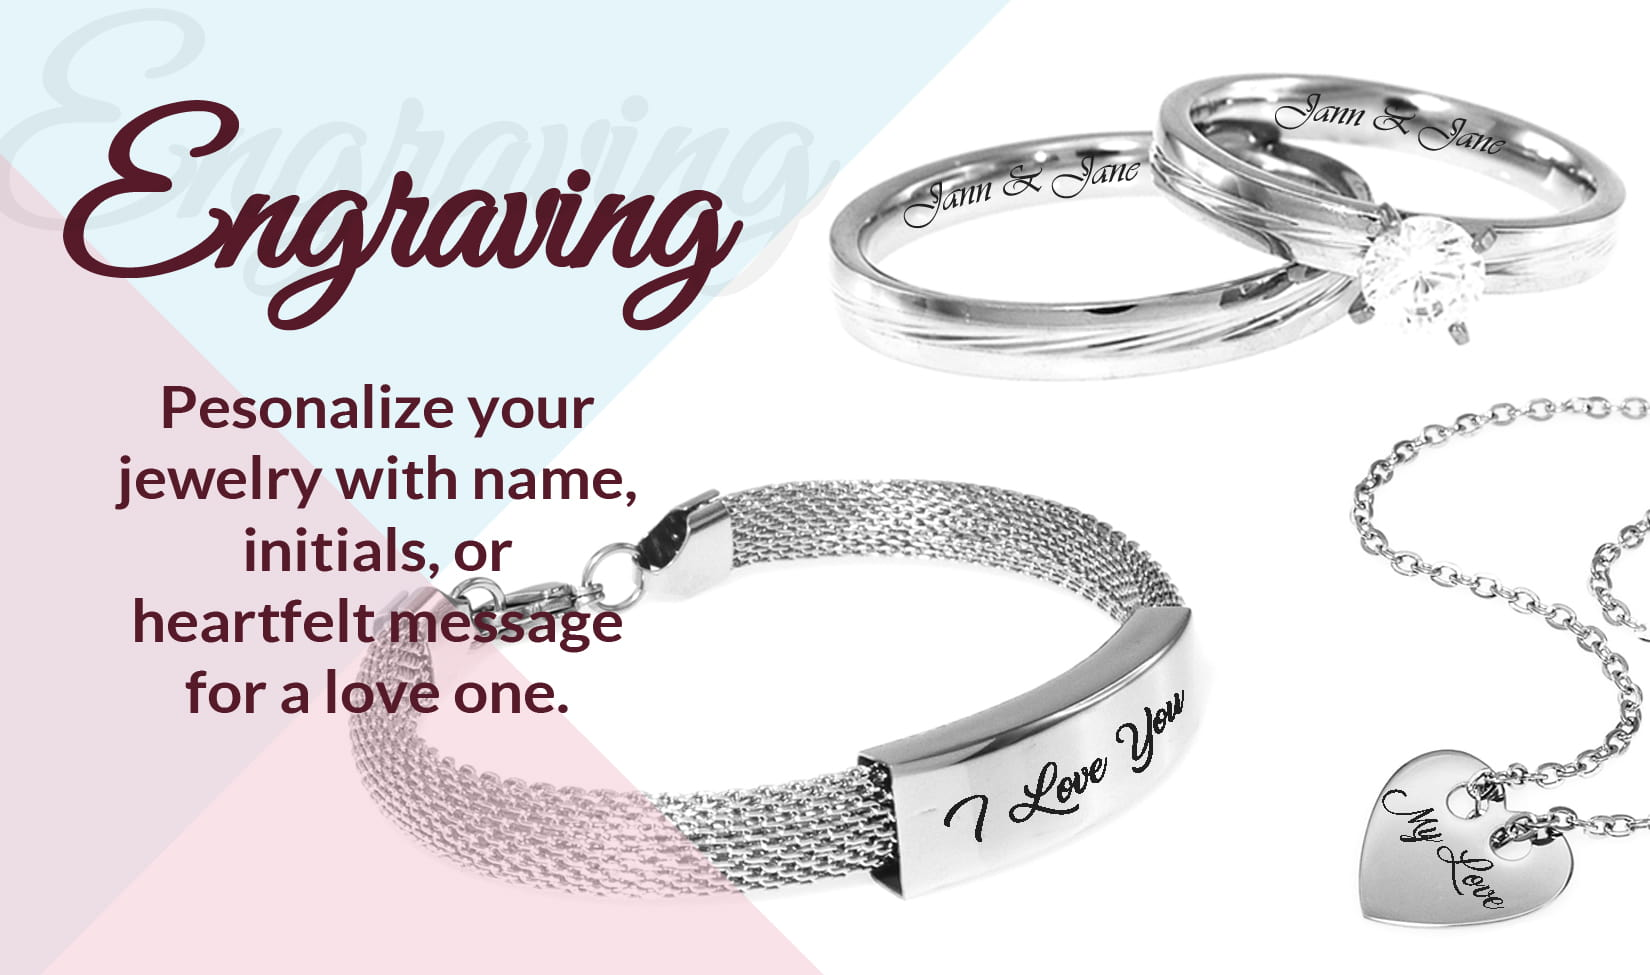 Imono Steel Jewelry - Engraving Services